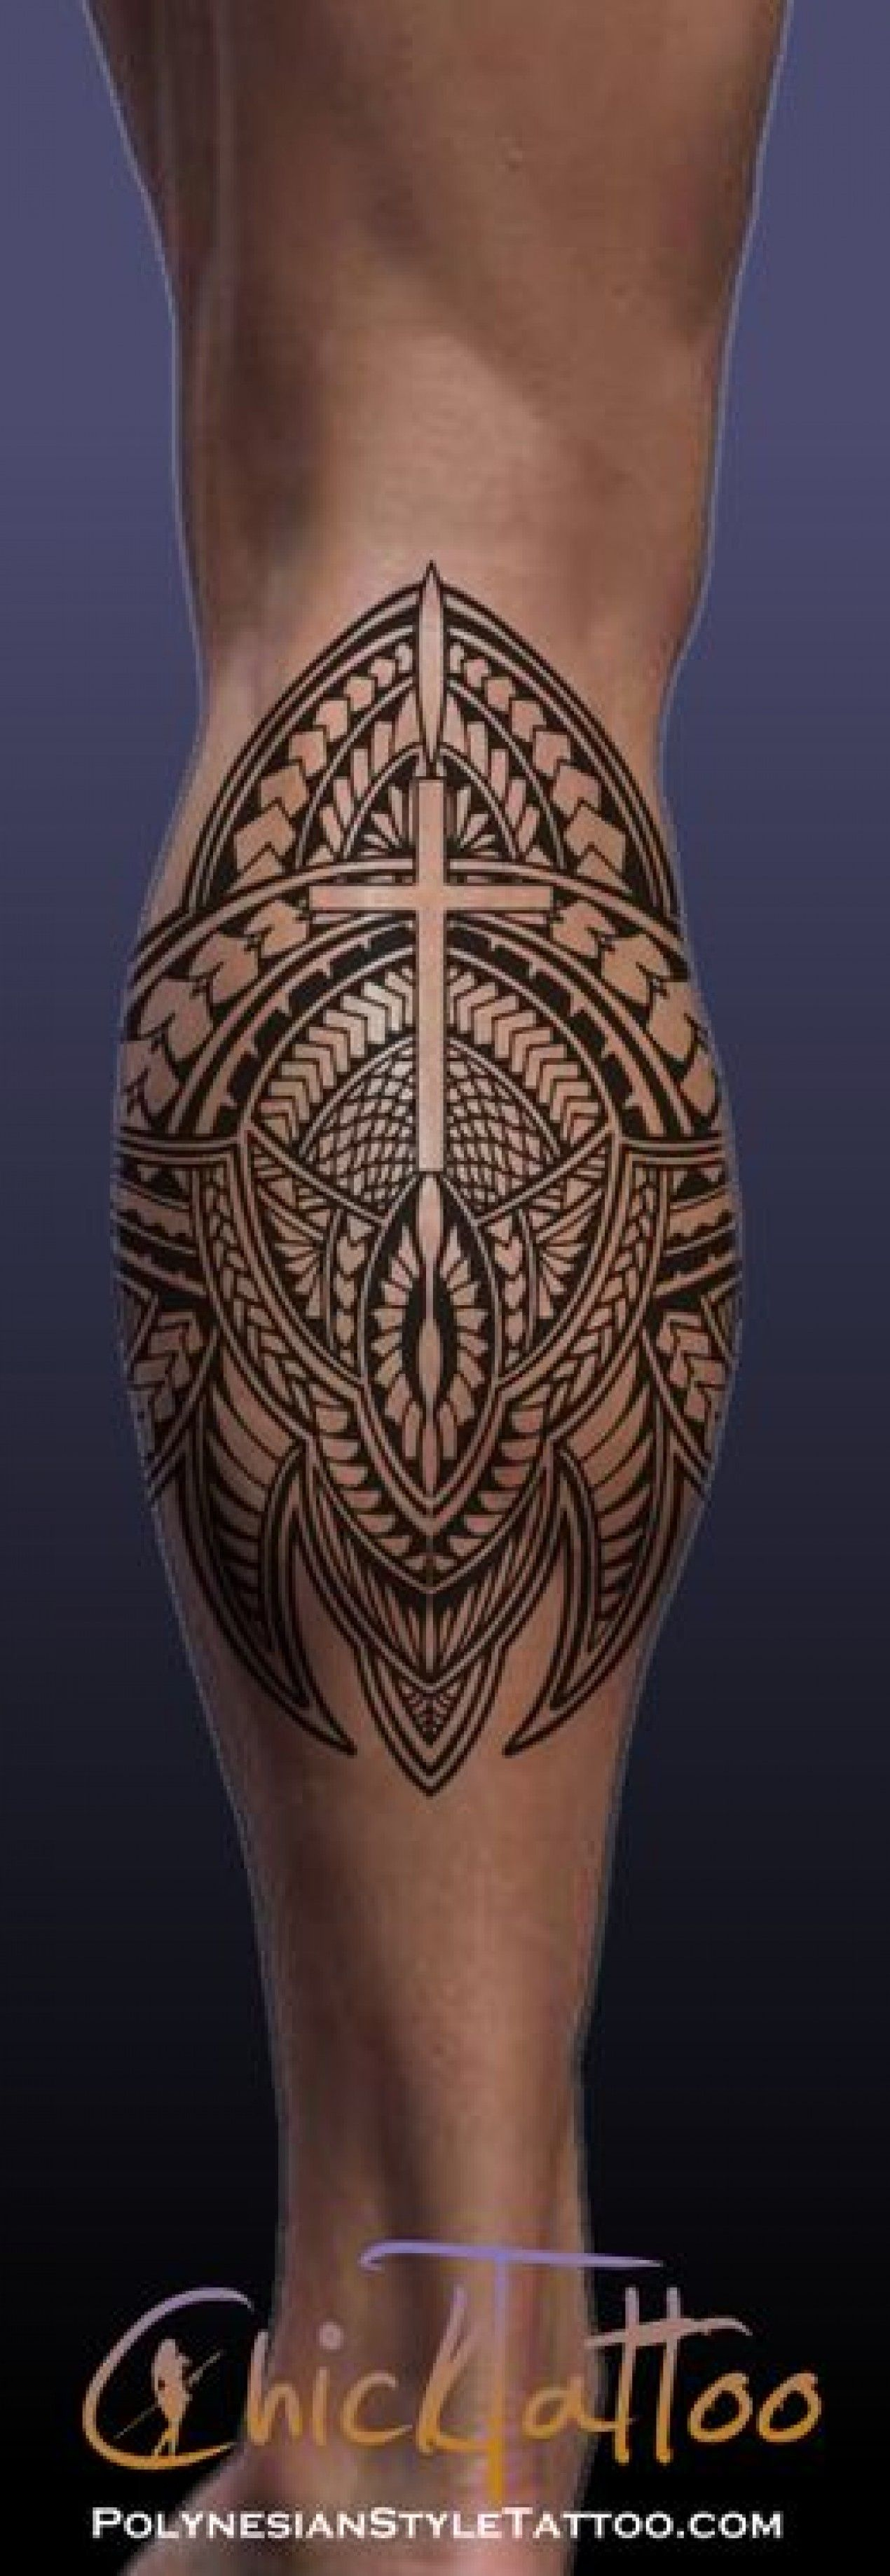 Photo De Tatouage Polynesien Mollet Tatoo Tatouage Tatouage